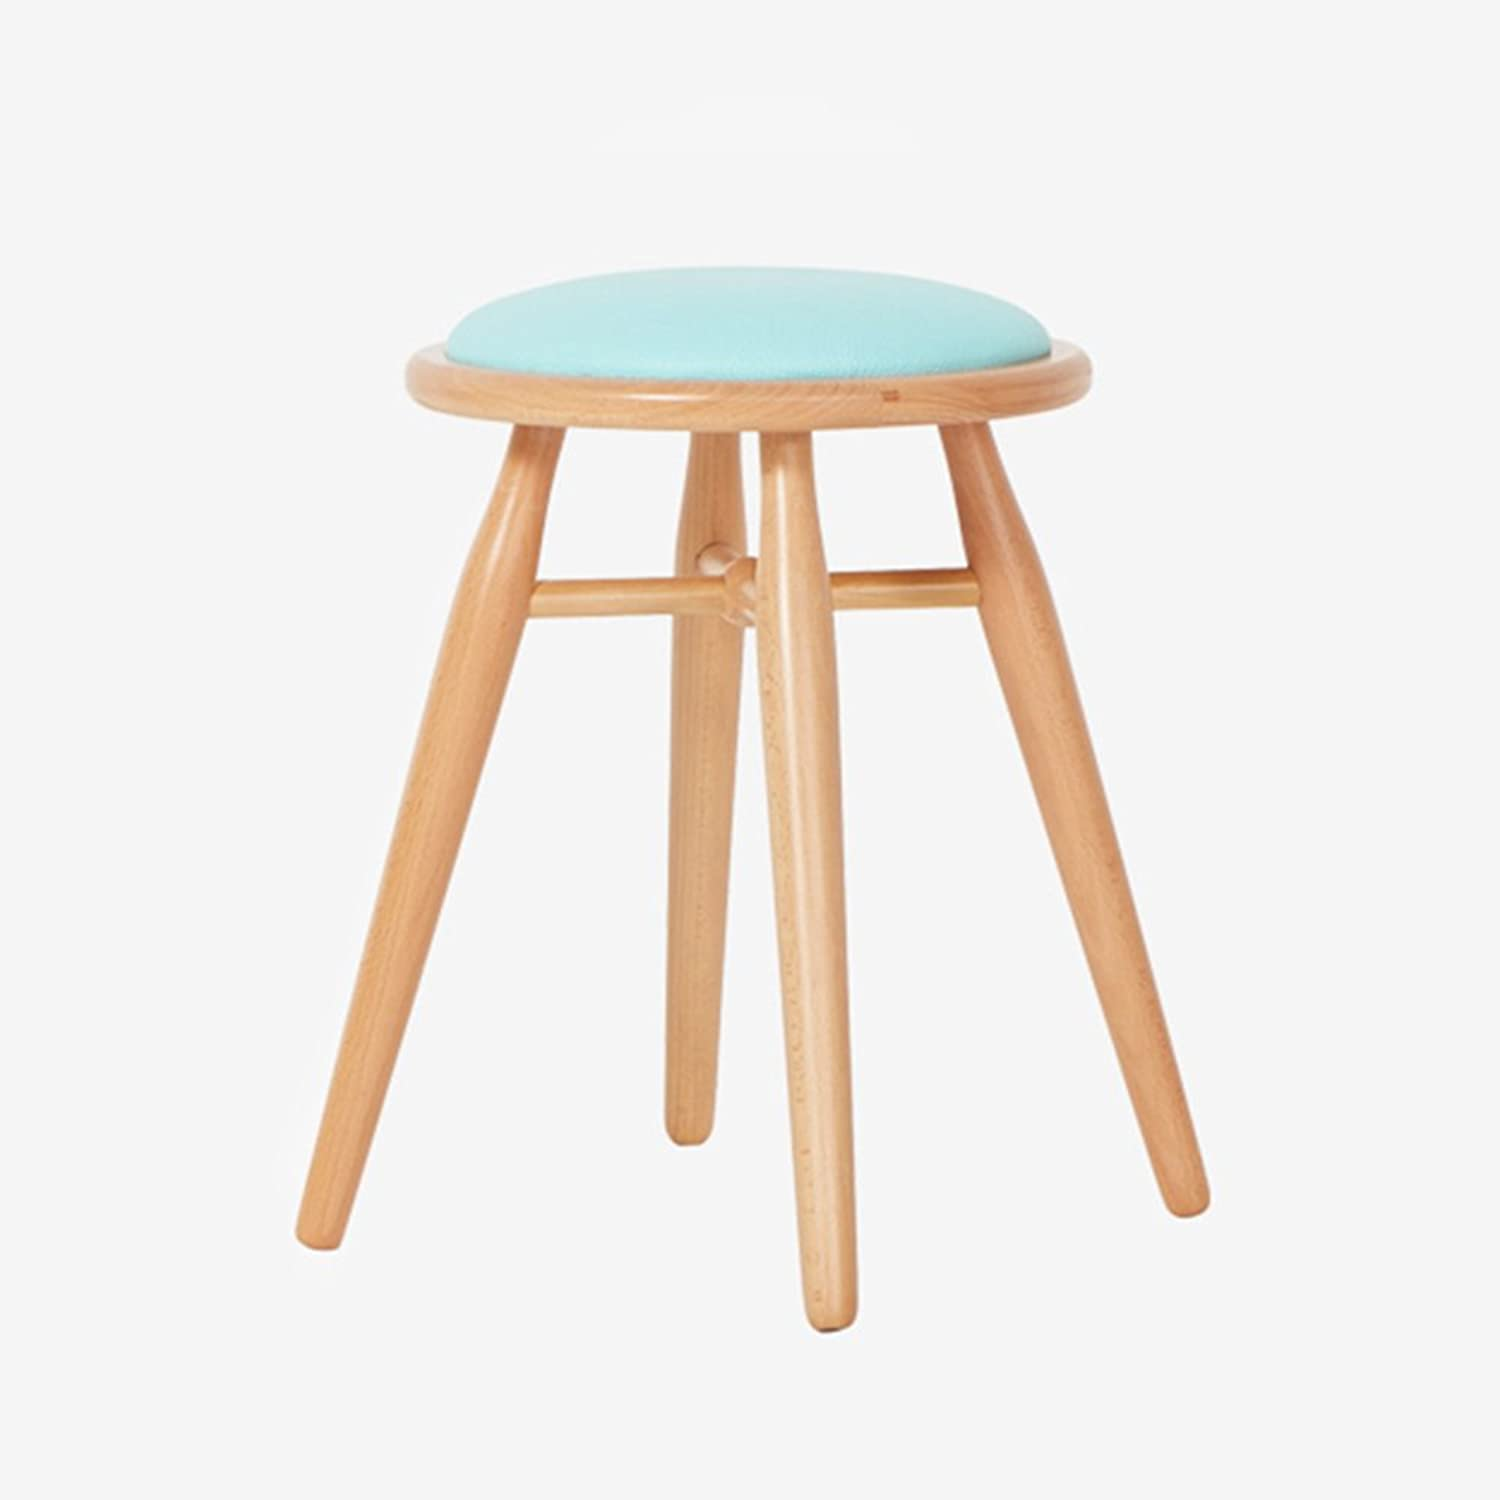 LHA Barstools Multifunctional Stool Kitchen Dining Chair Stool shoes Bench Retro Wooden Chair Linen Fabric Seat Bar Furniture (color   bluee)